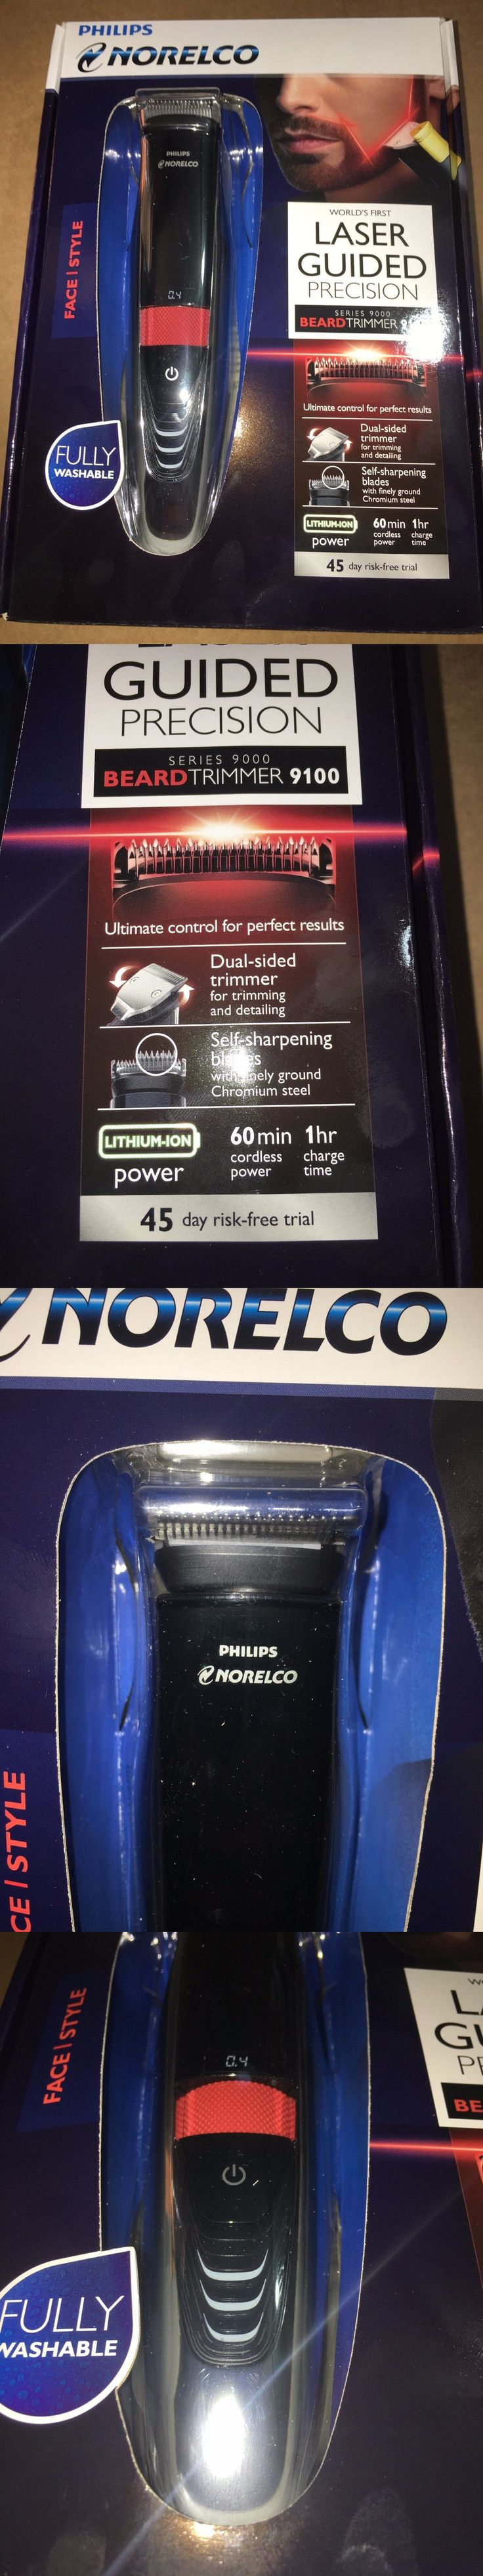 Shaving: Philips Norelco Bt9285/9100 Laser Guided Mens Beard Facial Hair Trimmer New BUY IT NOW ONLY: $68.88